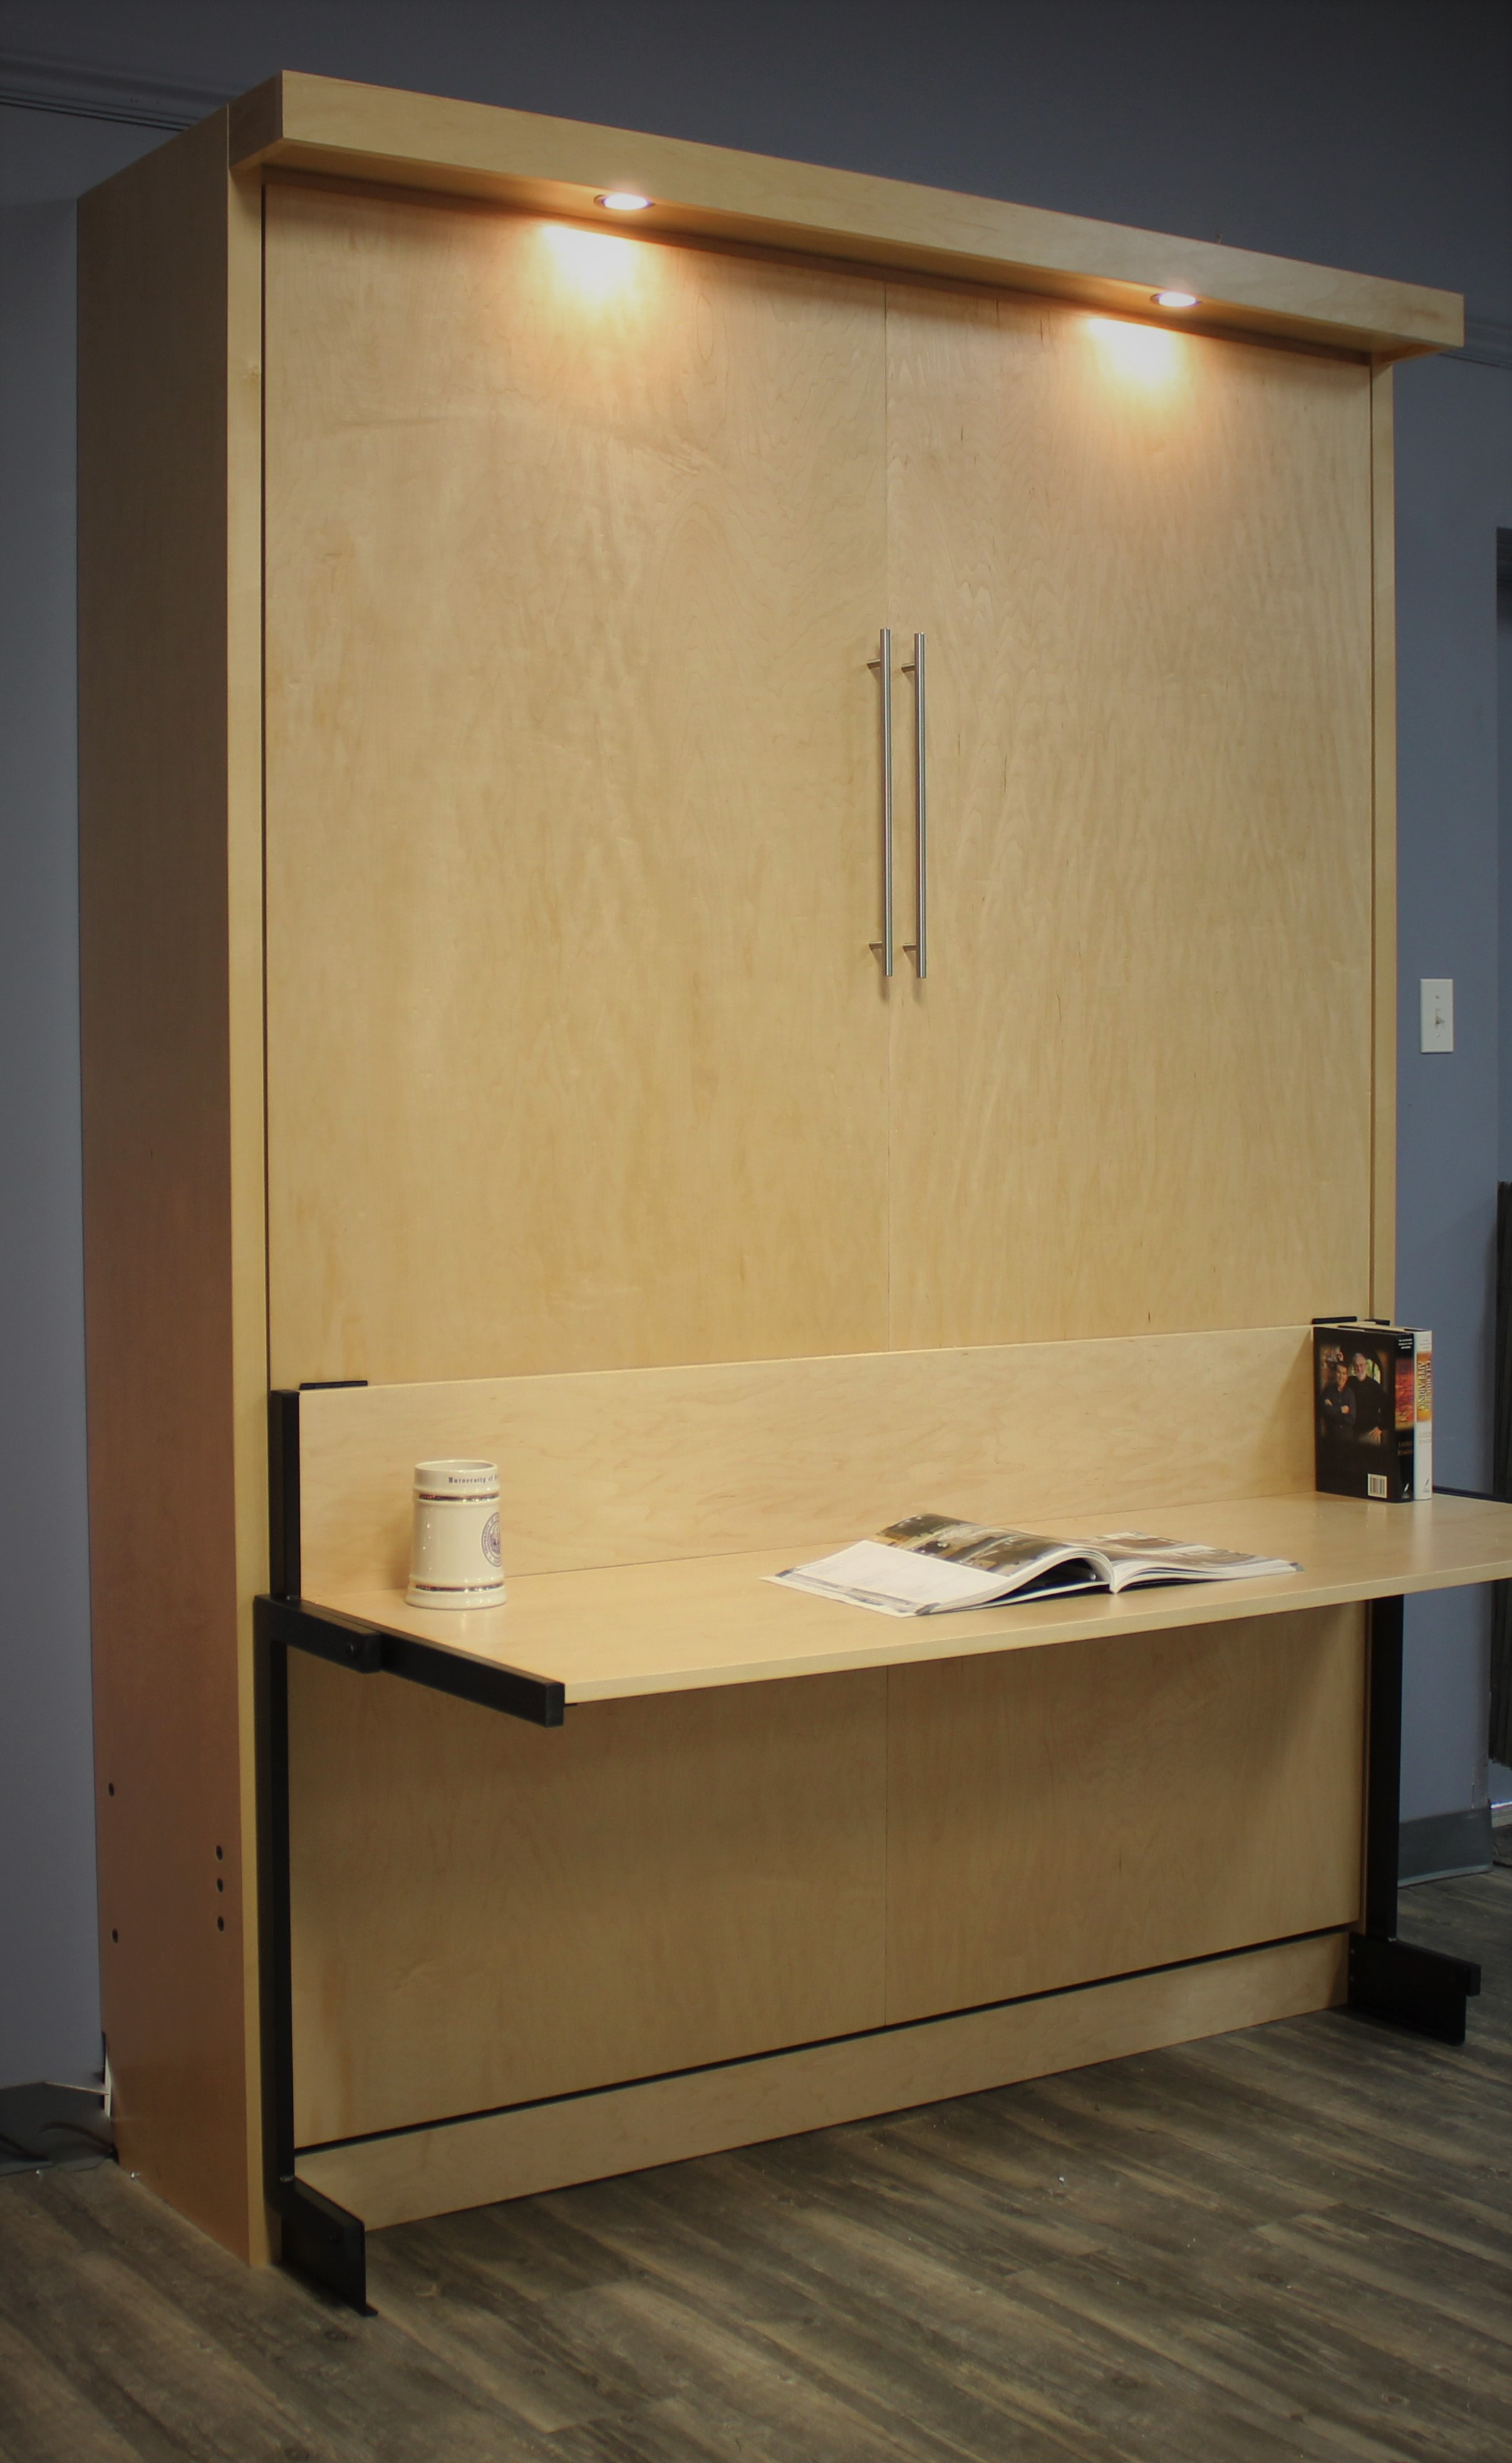 Manhattan Murphy Bed Desk #122-1219